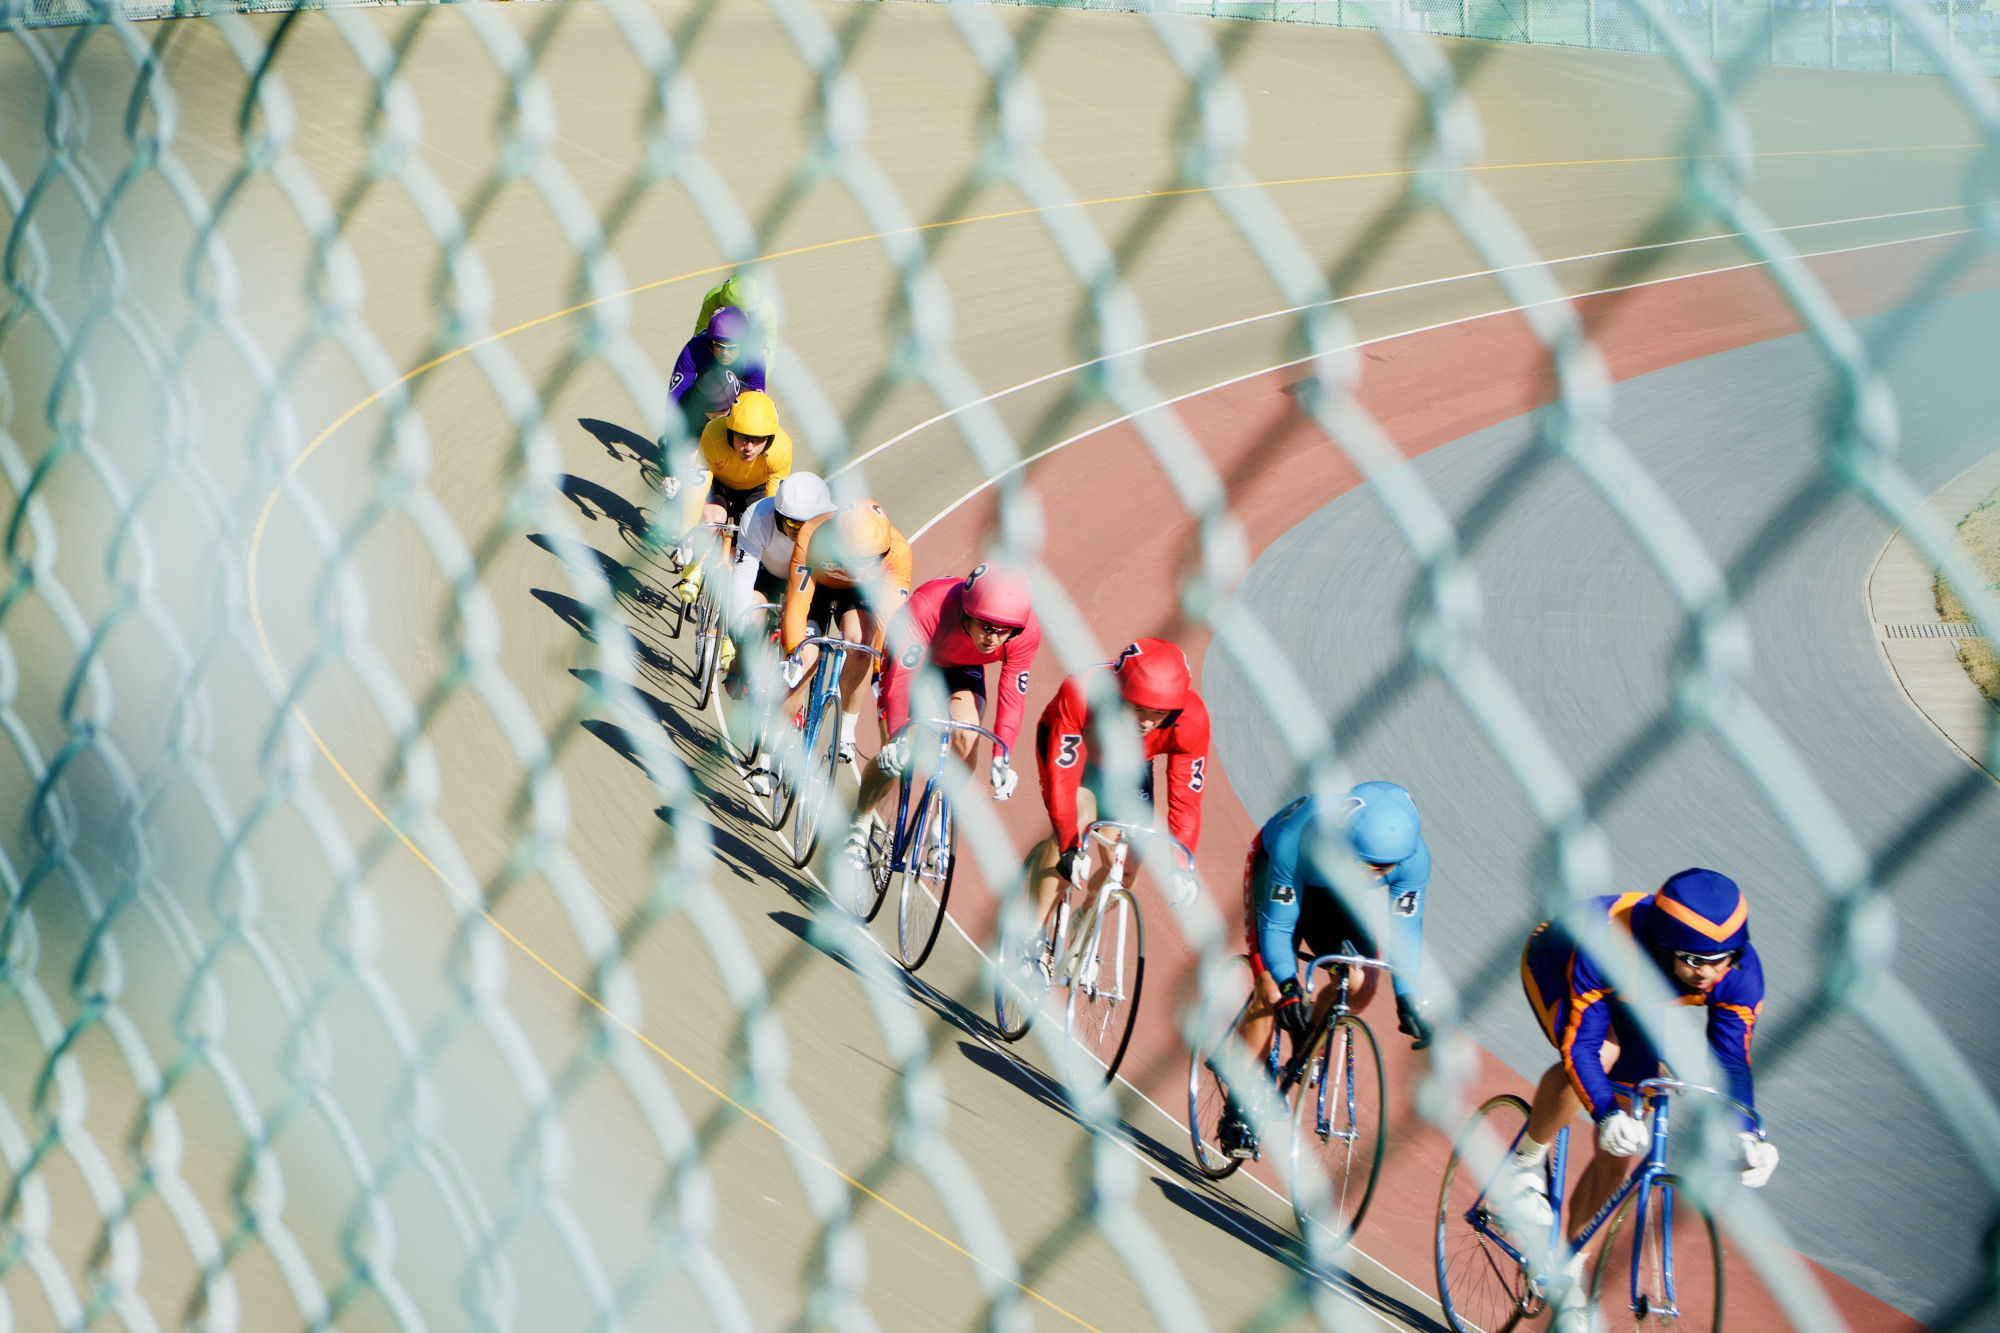 Easing into it: A pacemaker brings the line of keirin racers up to speed. | OSCAR BOYD